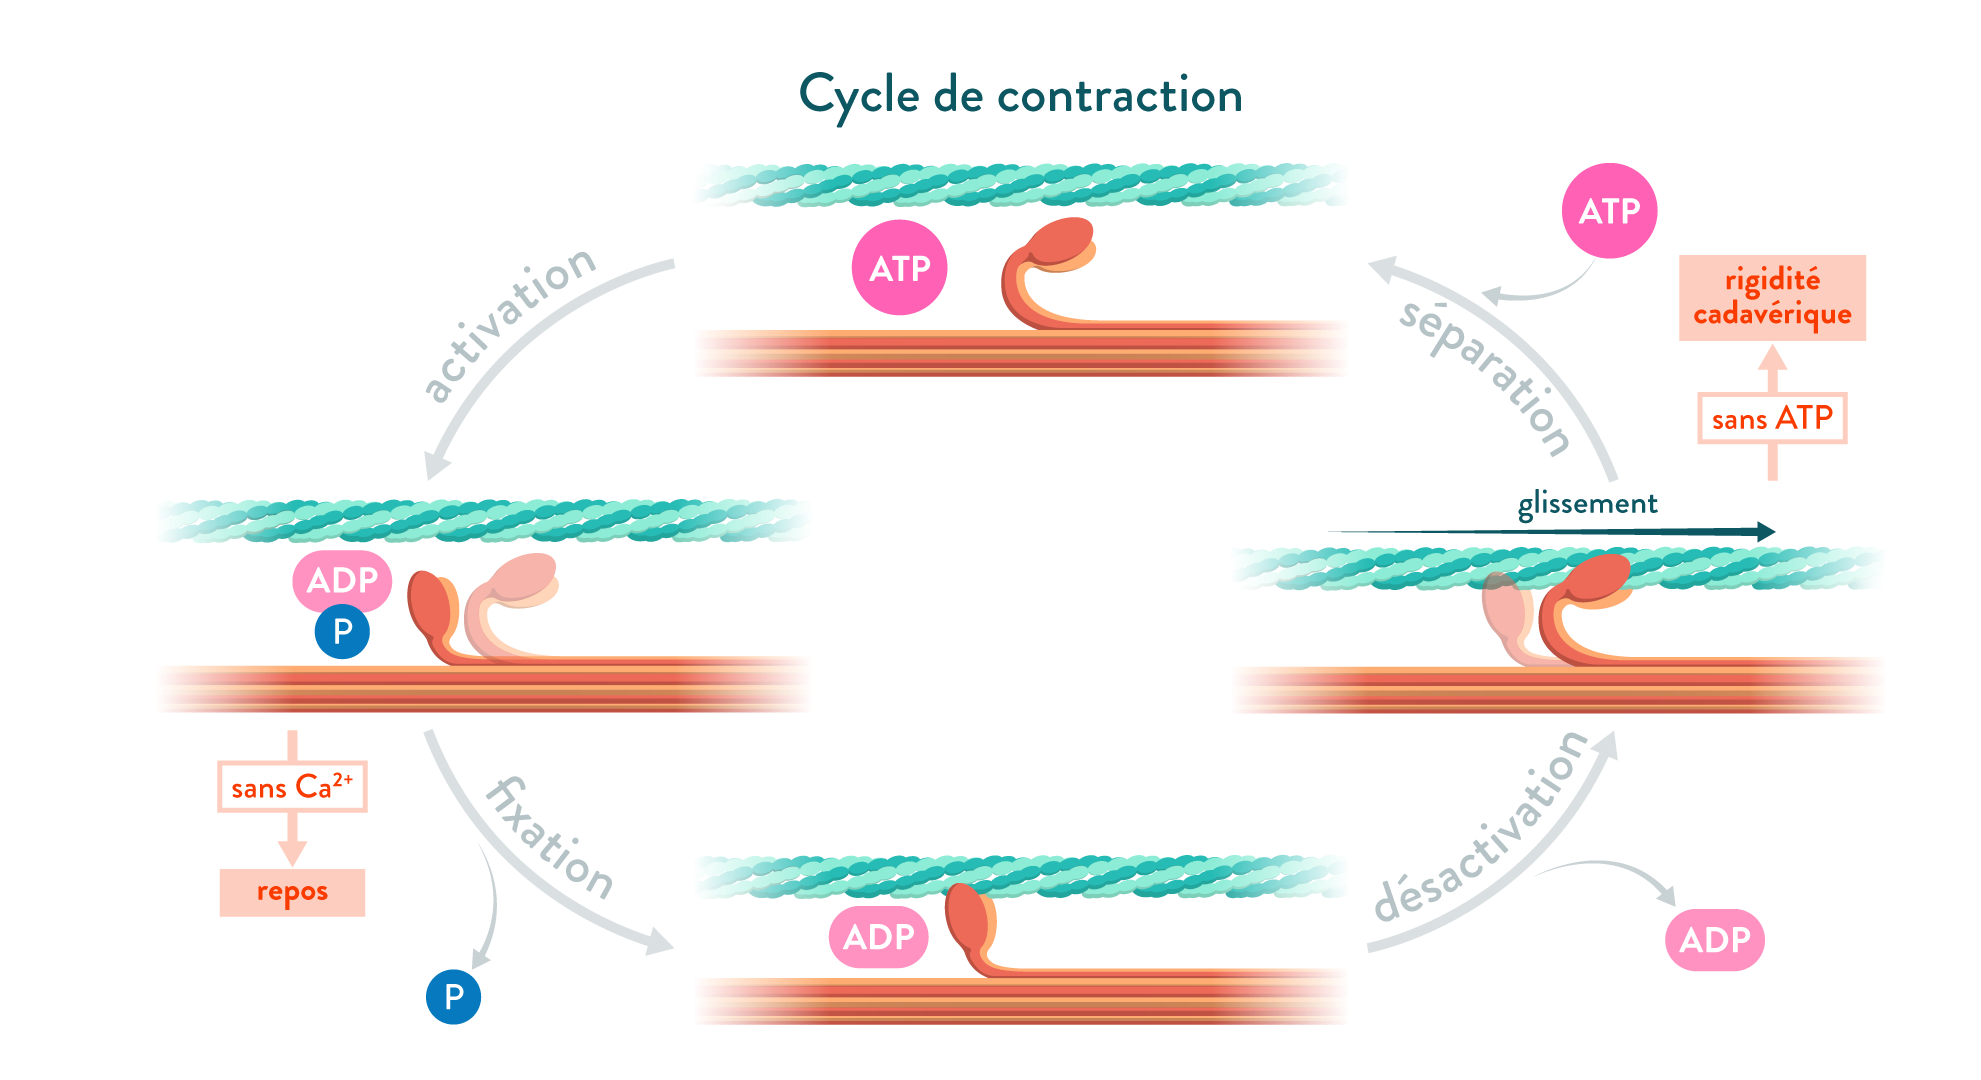 Étapes du cycle de contraction